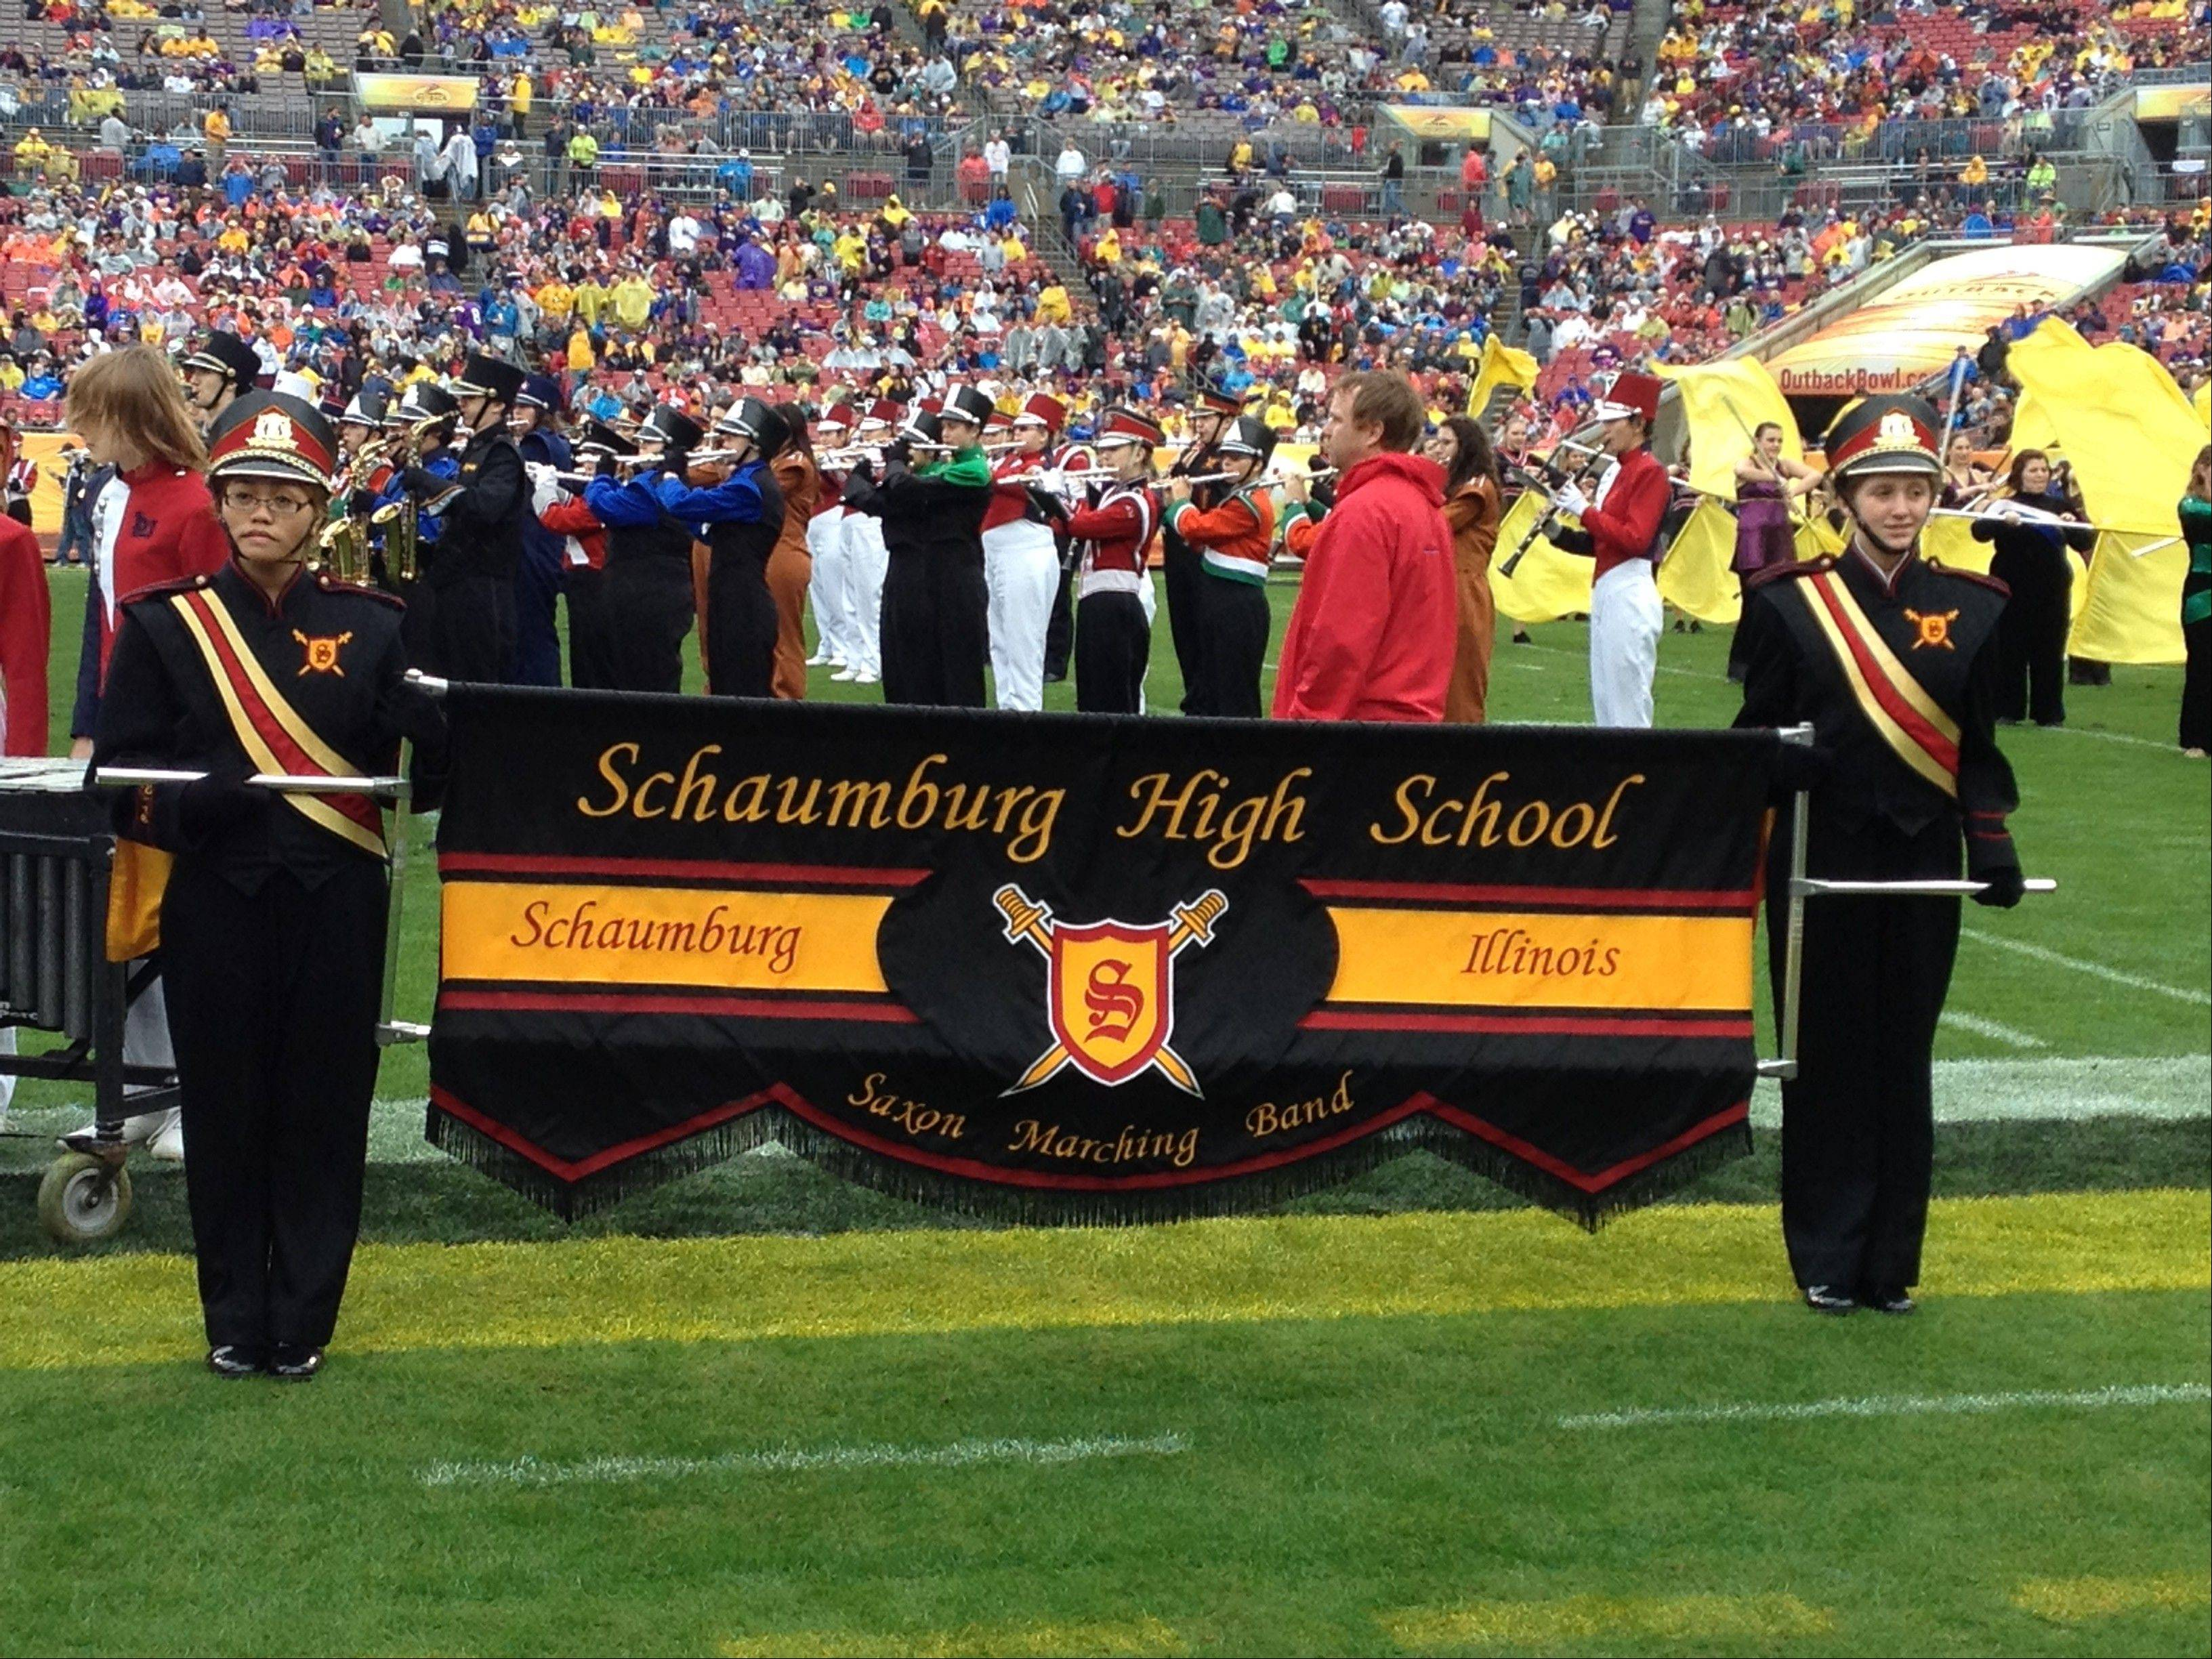 The Schaumburg High School marching band performs during halftime at the Outback Bowl in Florida.